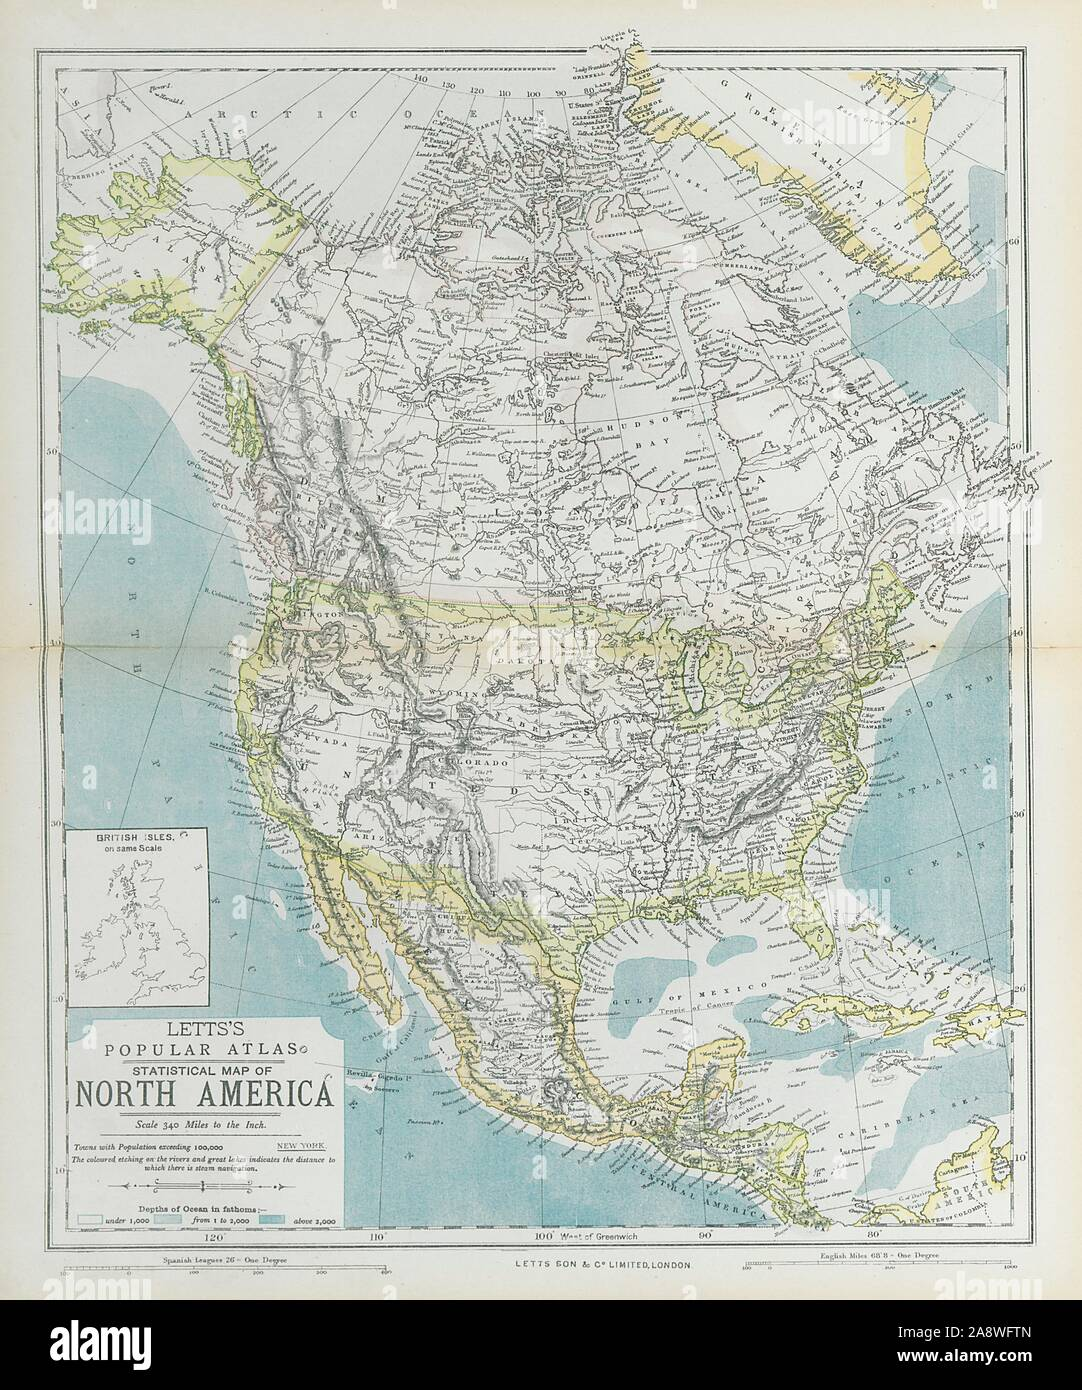 NORTH AMERICA showing Union Pacific transcontinental ...